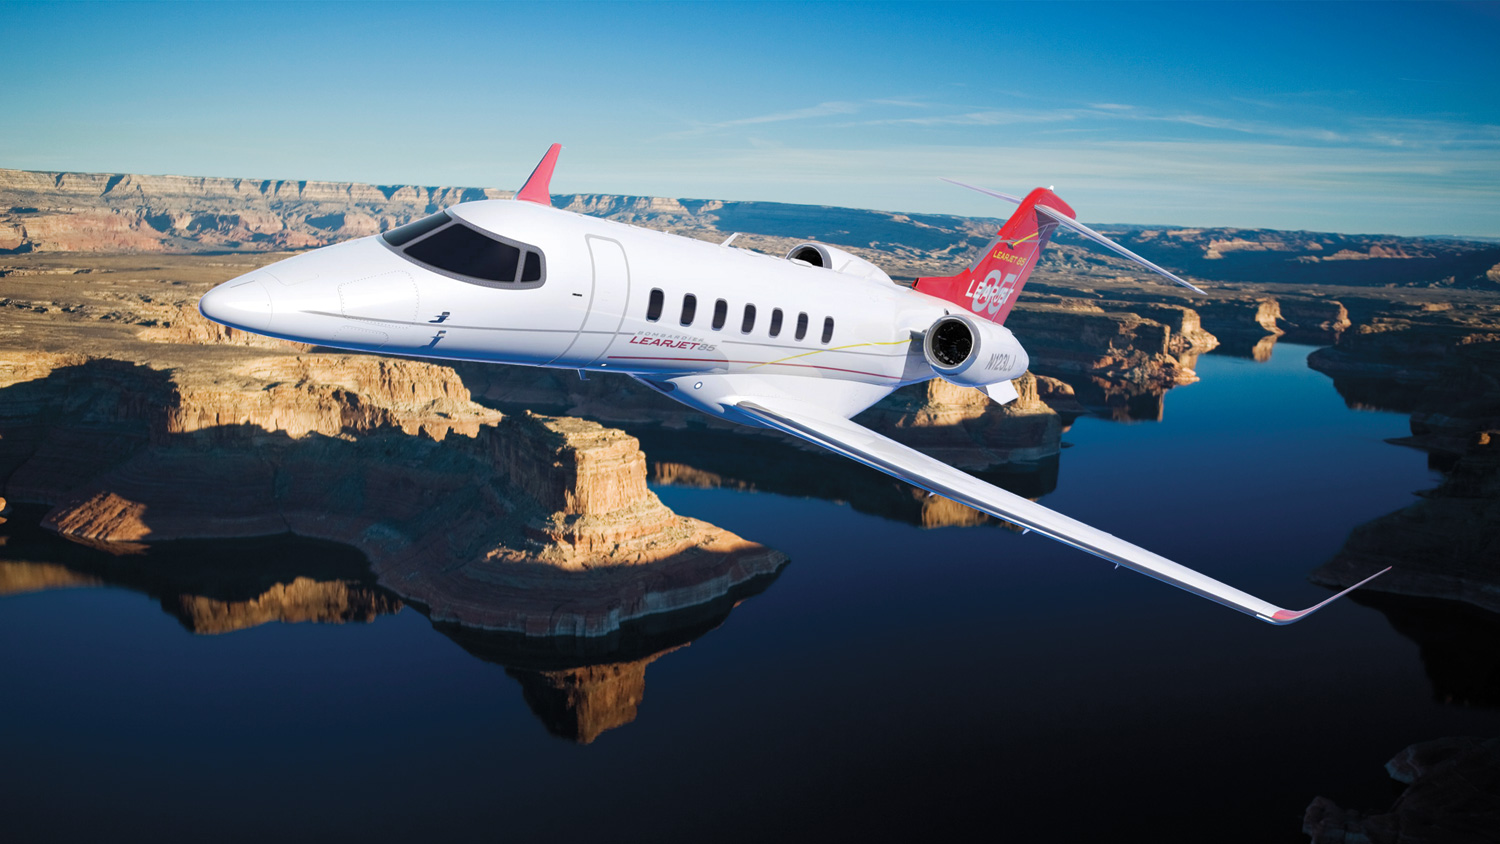 Thrill Rider Private Jet Thrill Ride By Millionaire39s Concierge